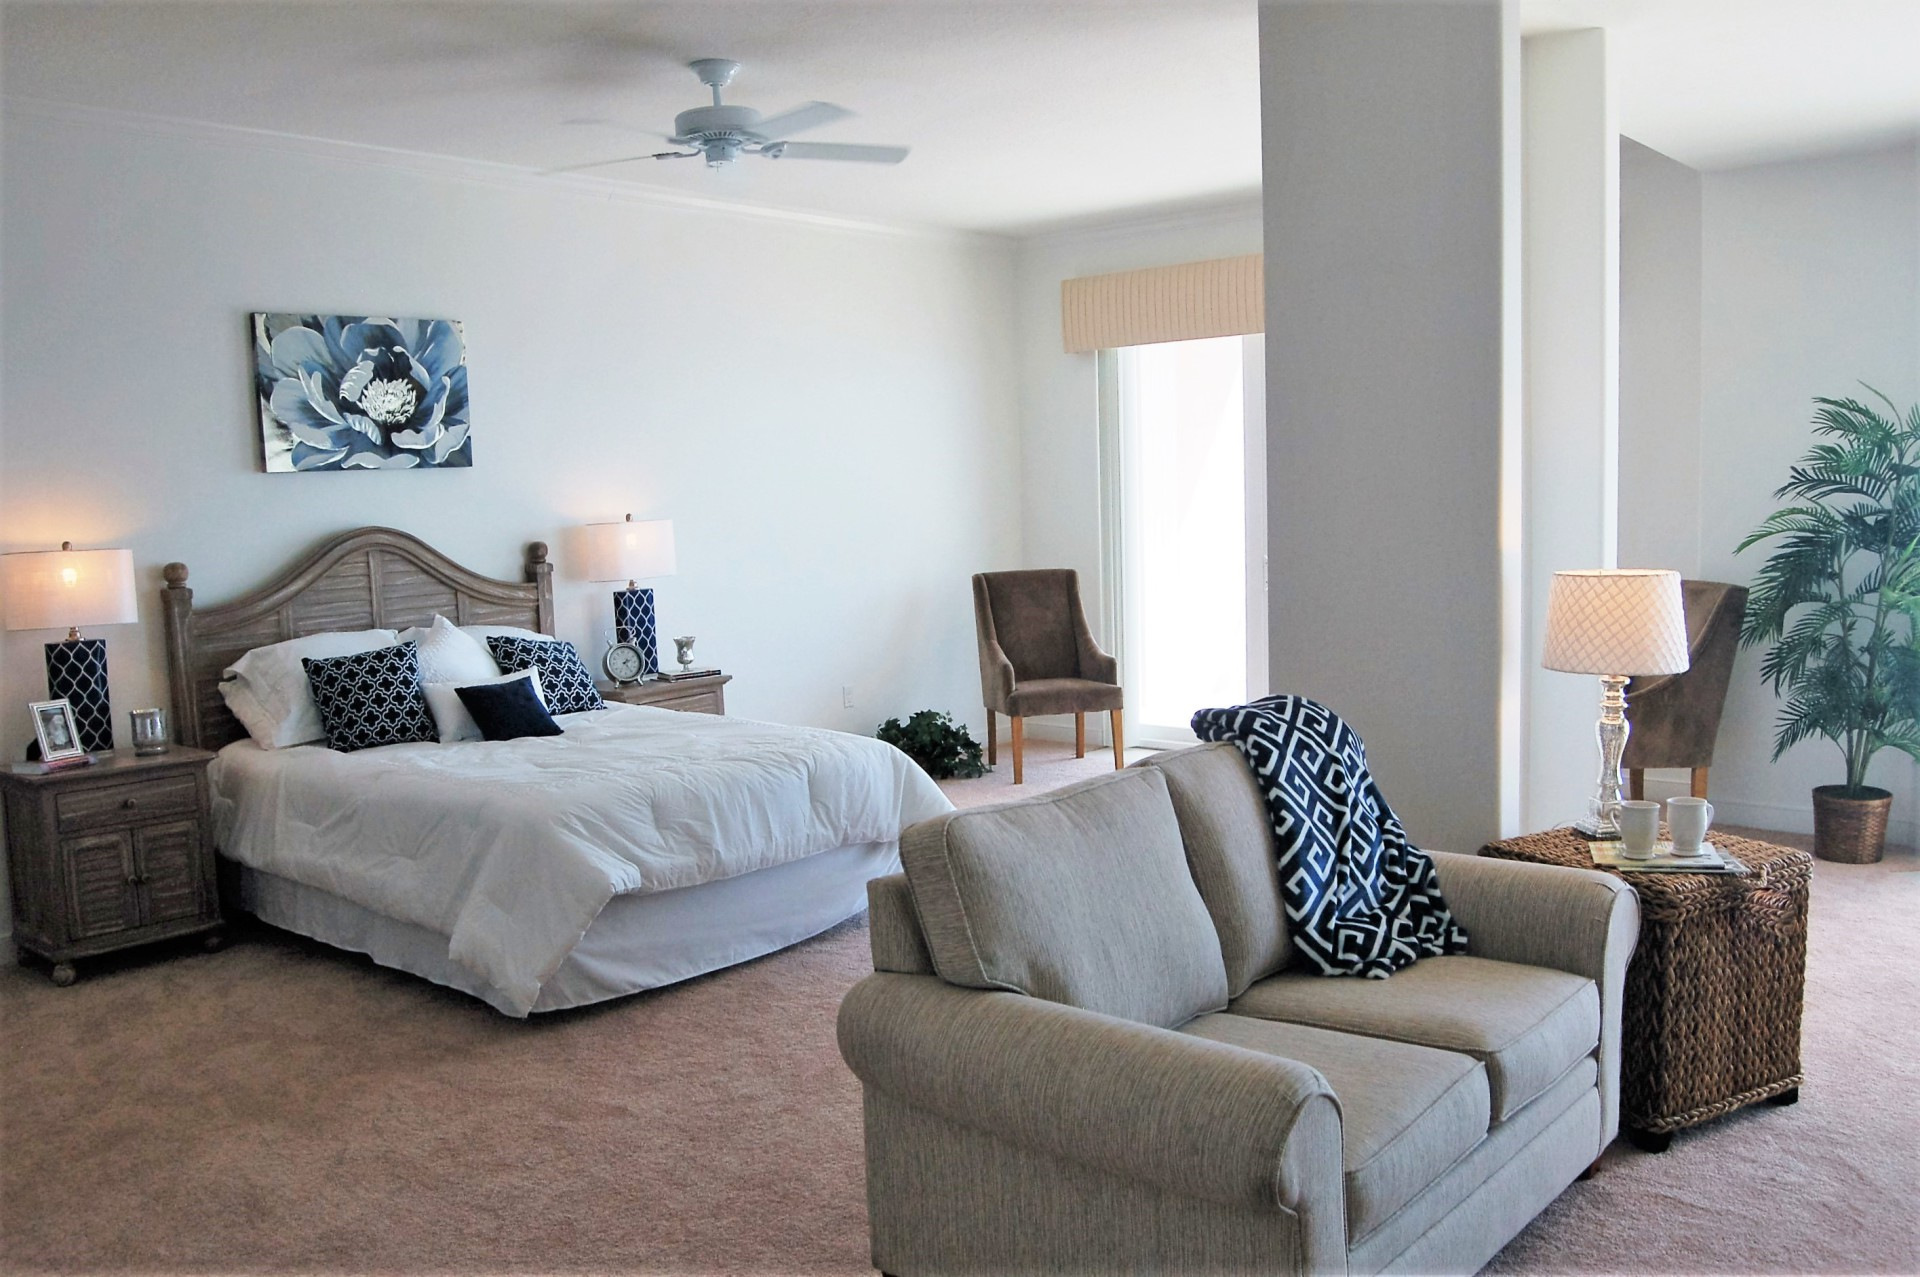 Beach front condo, Home Staging Beach side, Indialantic, Florida, Ocean front condo, Ocean Front Home Staging